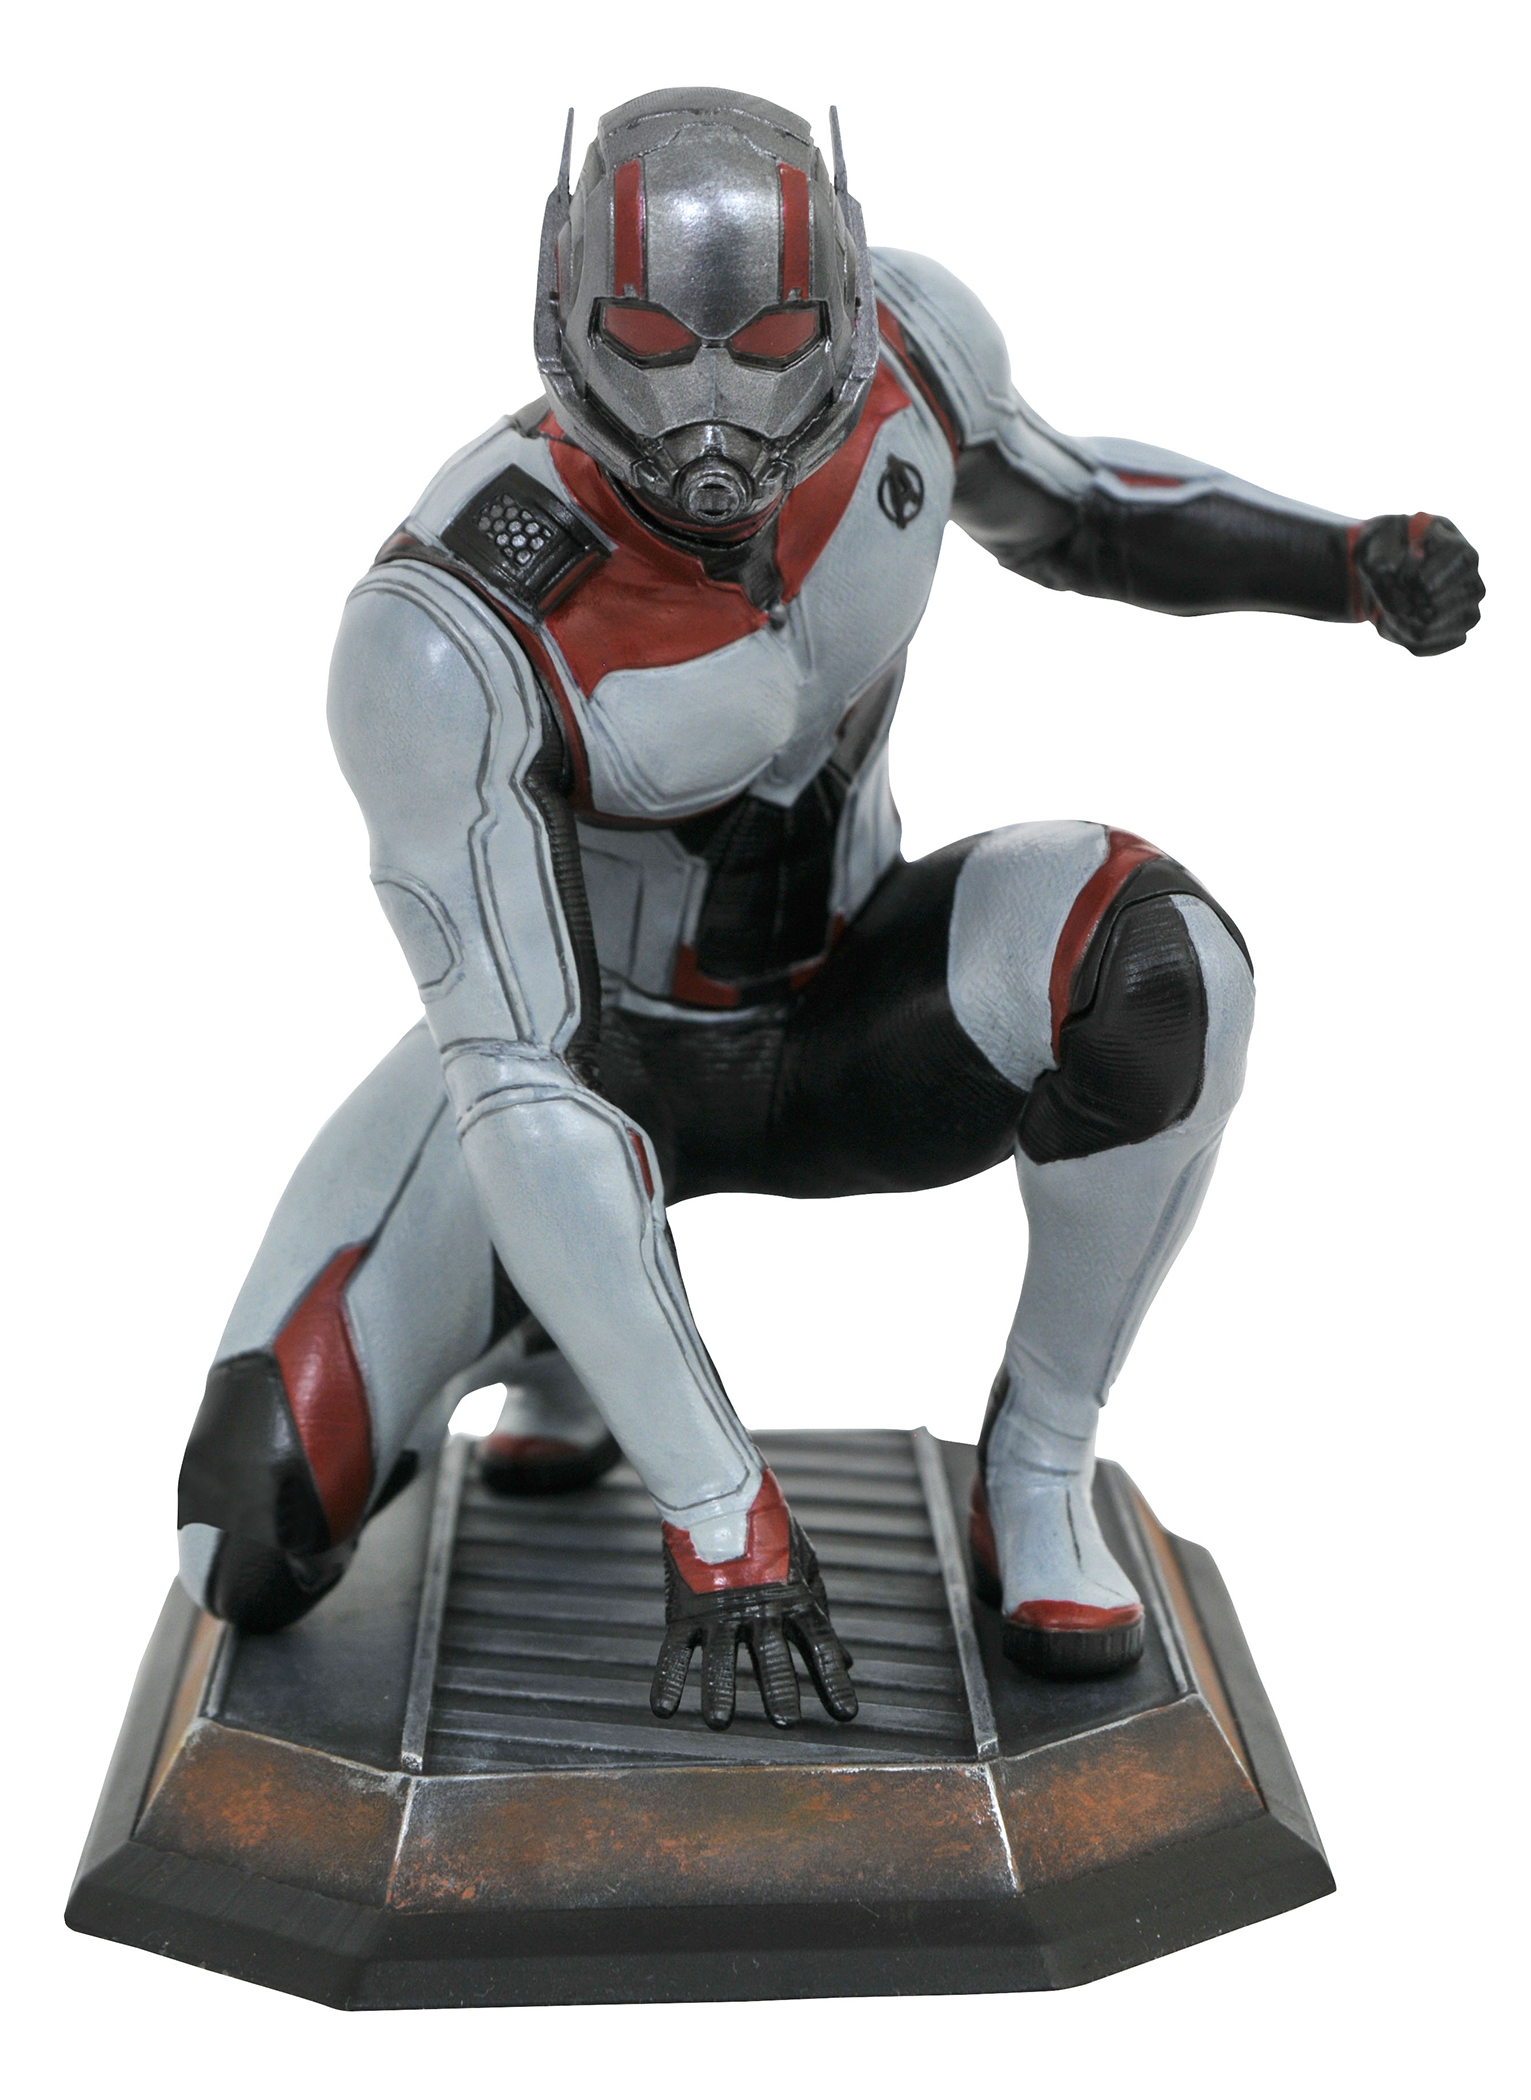 MARVEL GALLERY AVENGERS 4 QUANTUM REALM ANT-MAN PVC FIG